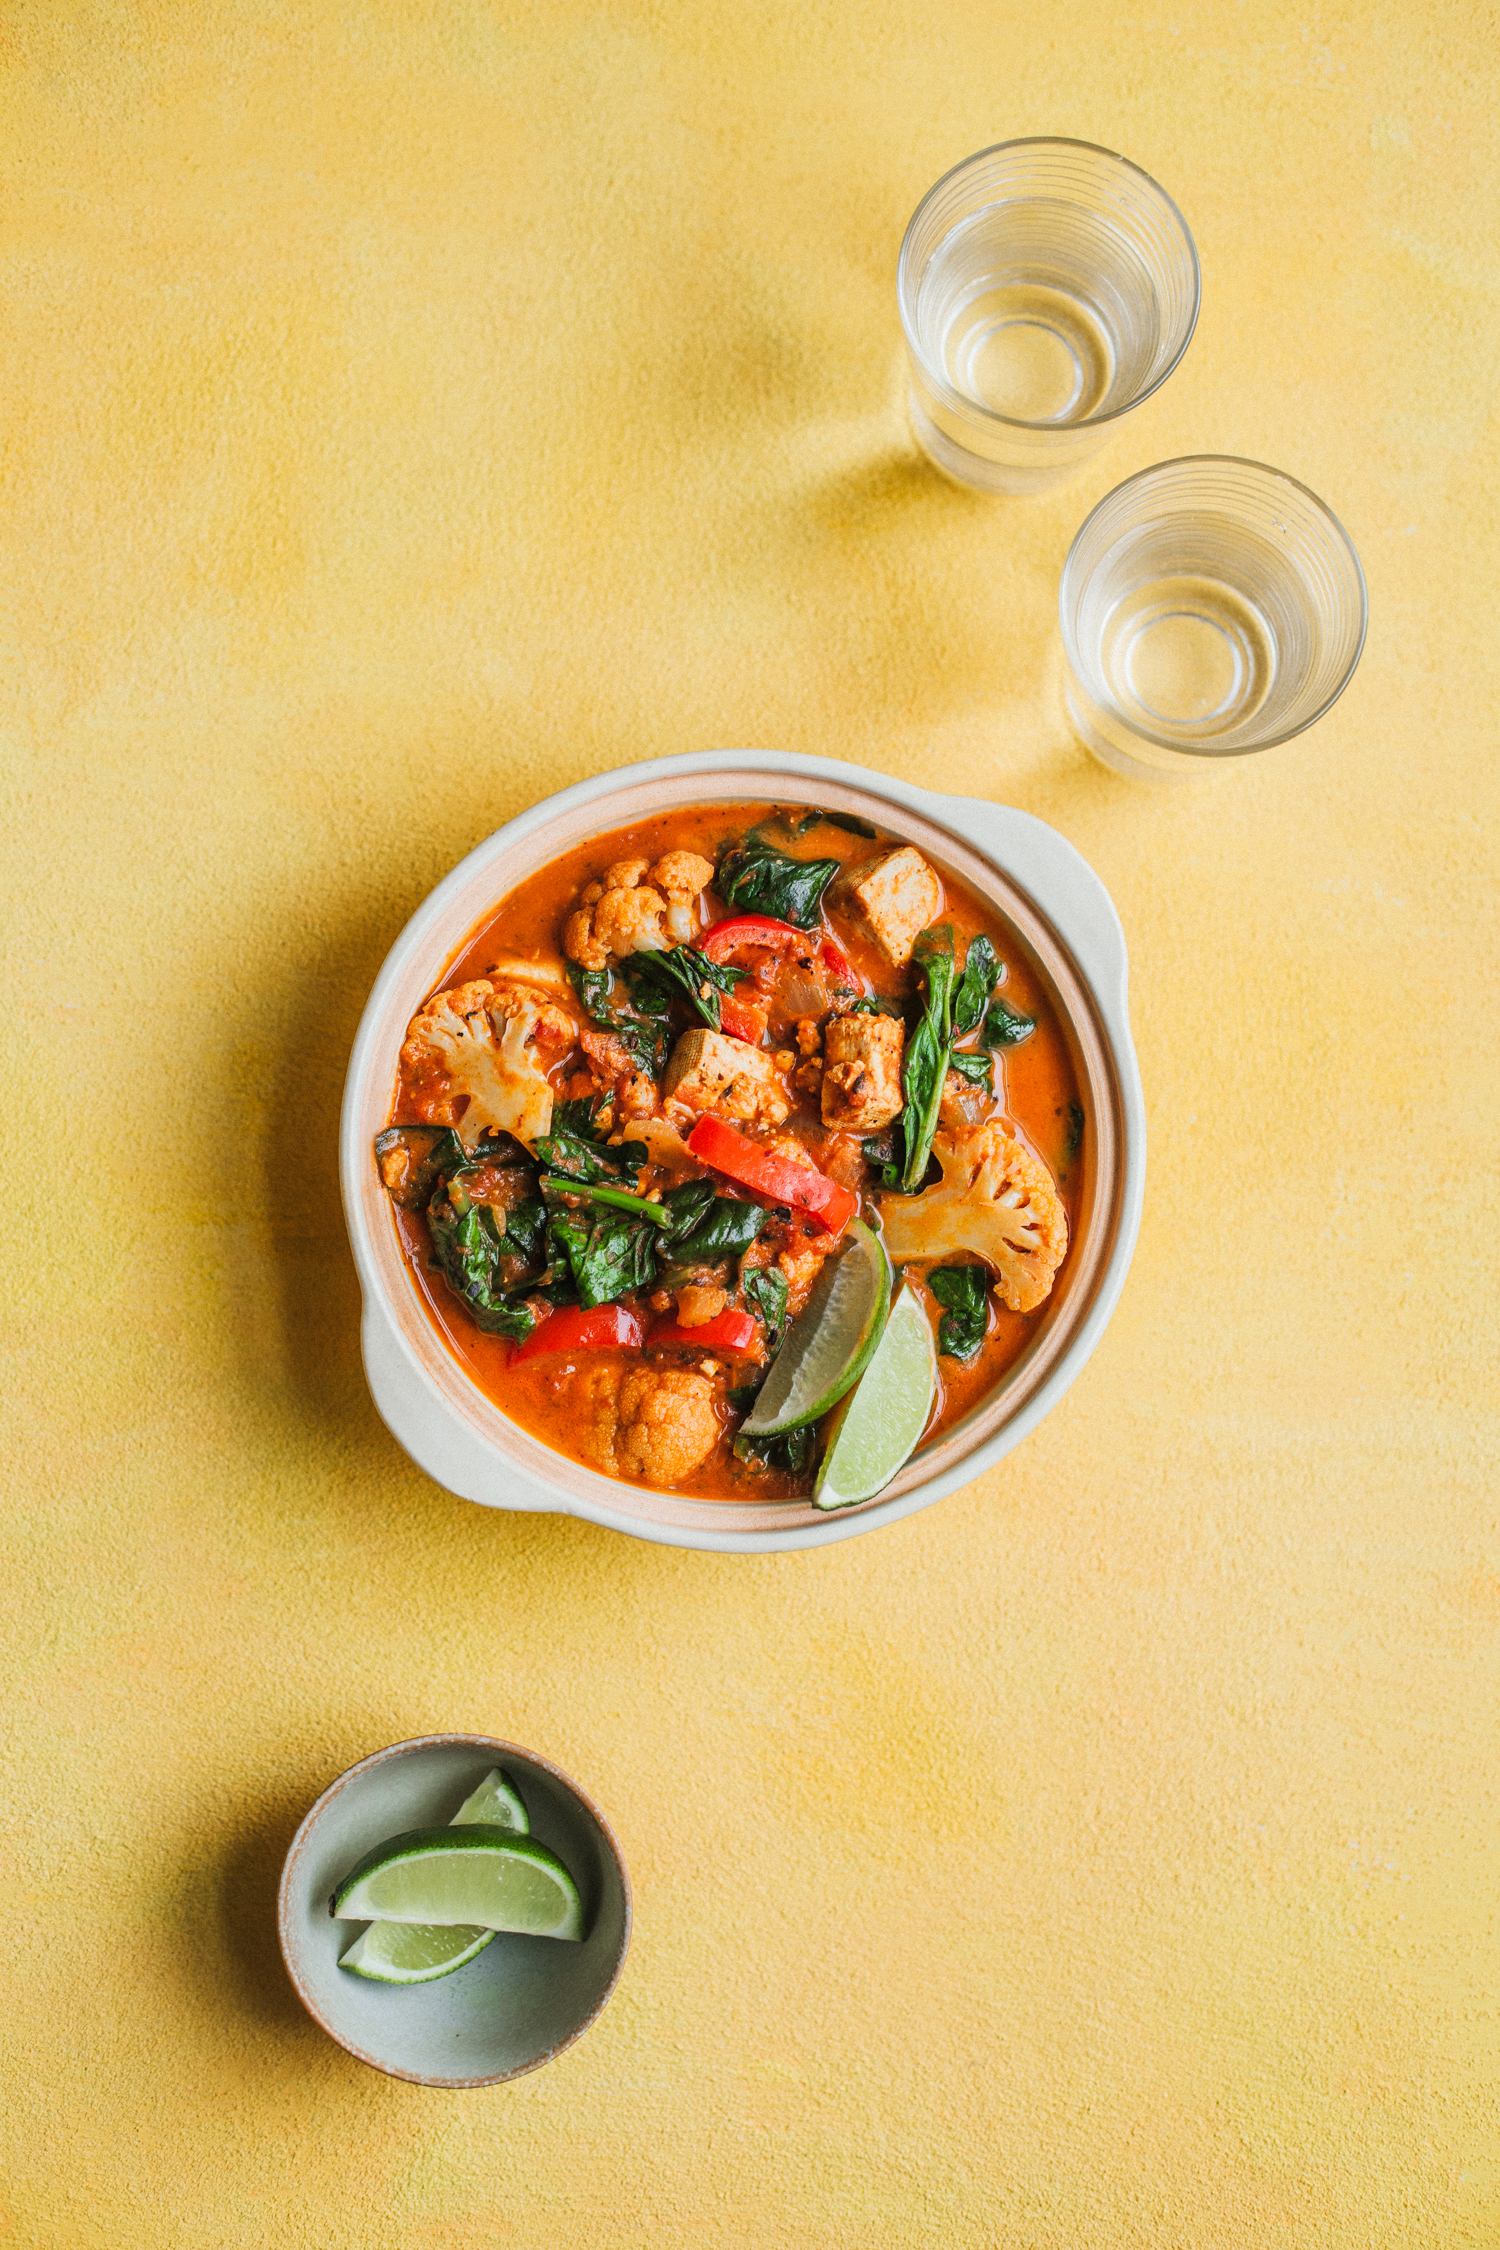 OUR FAVORITE WEEKNIGHT CURRY - Recipe by Golubka KitchenCurry is such a great weeknight dinner solution. It's a vibrant, one-pot dish, doesn't take too long, packs a lot of flavor, and does well when loaded with all kinds of veggies. This recipe is our absolute favorite weeknight curry of all time, and it's built on the combination of canned tomatoes and coconut milk. Have you ever tried pairing the two?  TRY & TASTE OUR FAVORITE WEEKNIGHT CURRY